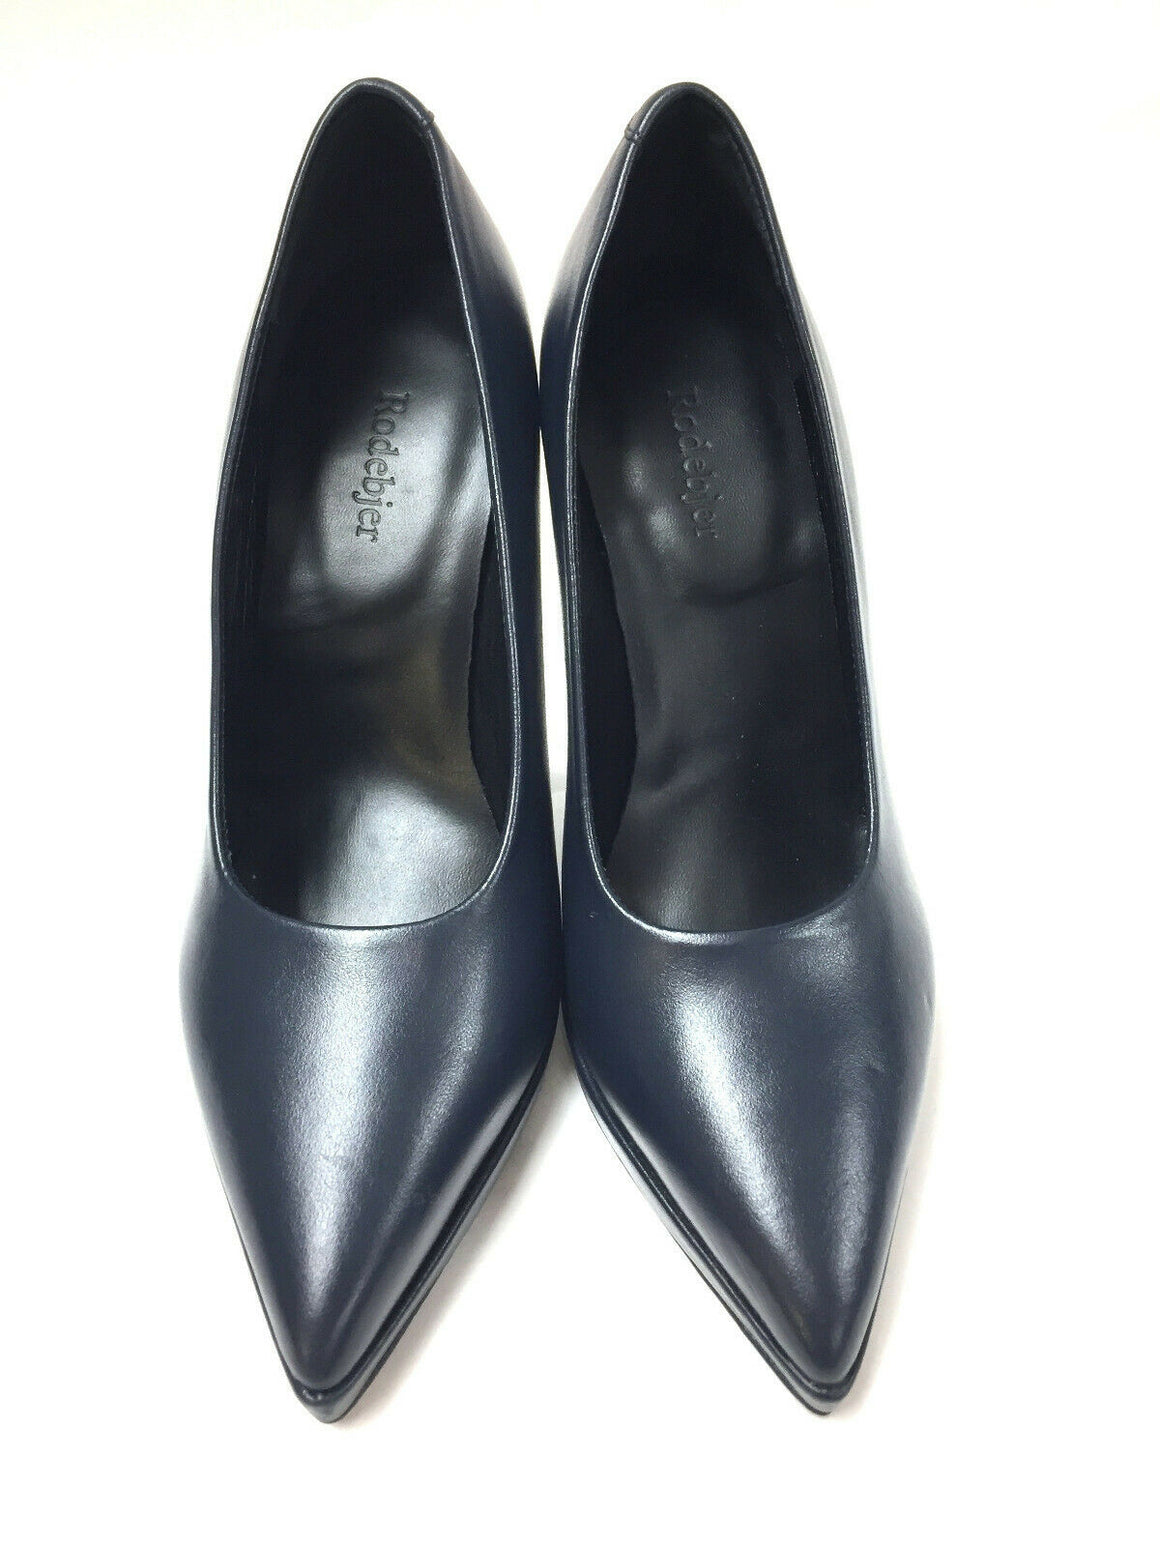 RODEBJER  Navy-Blue Leather Pointed-Toe Hi-Heel Pumps Shoes Size: 36 / 6